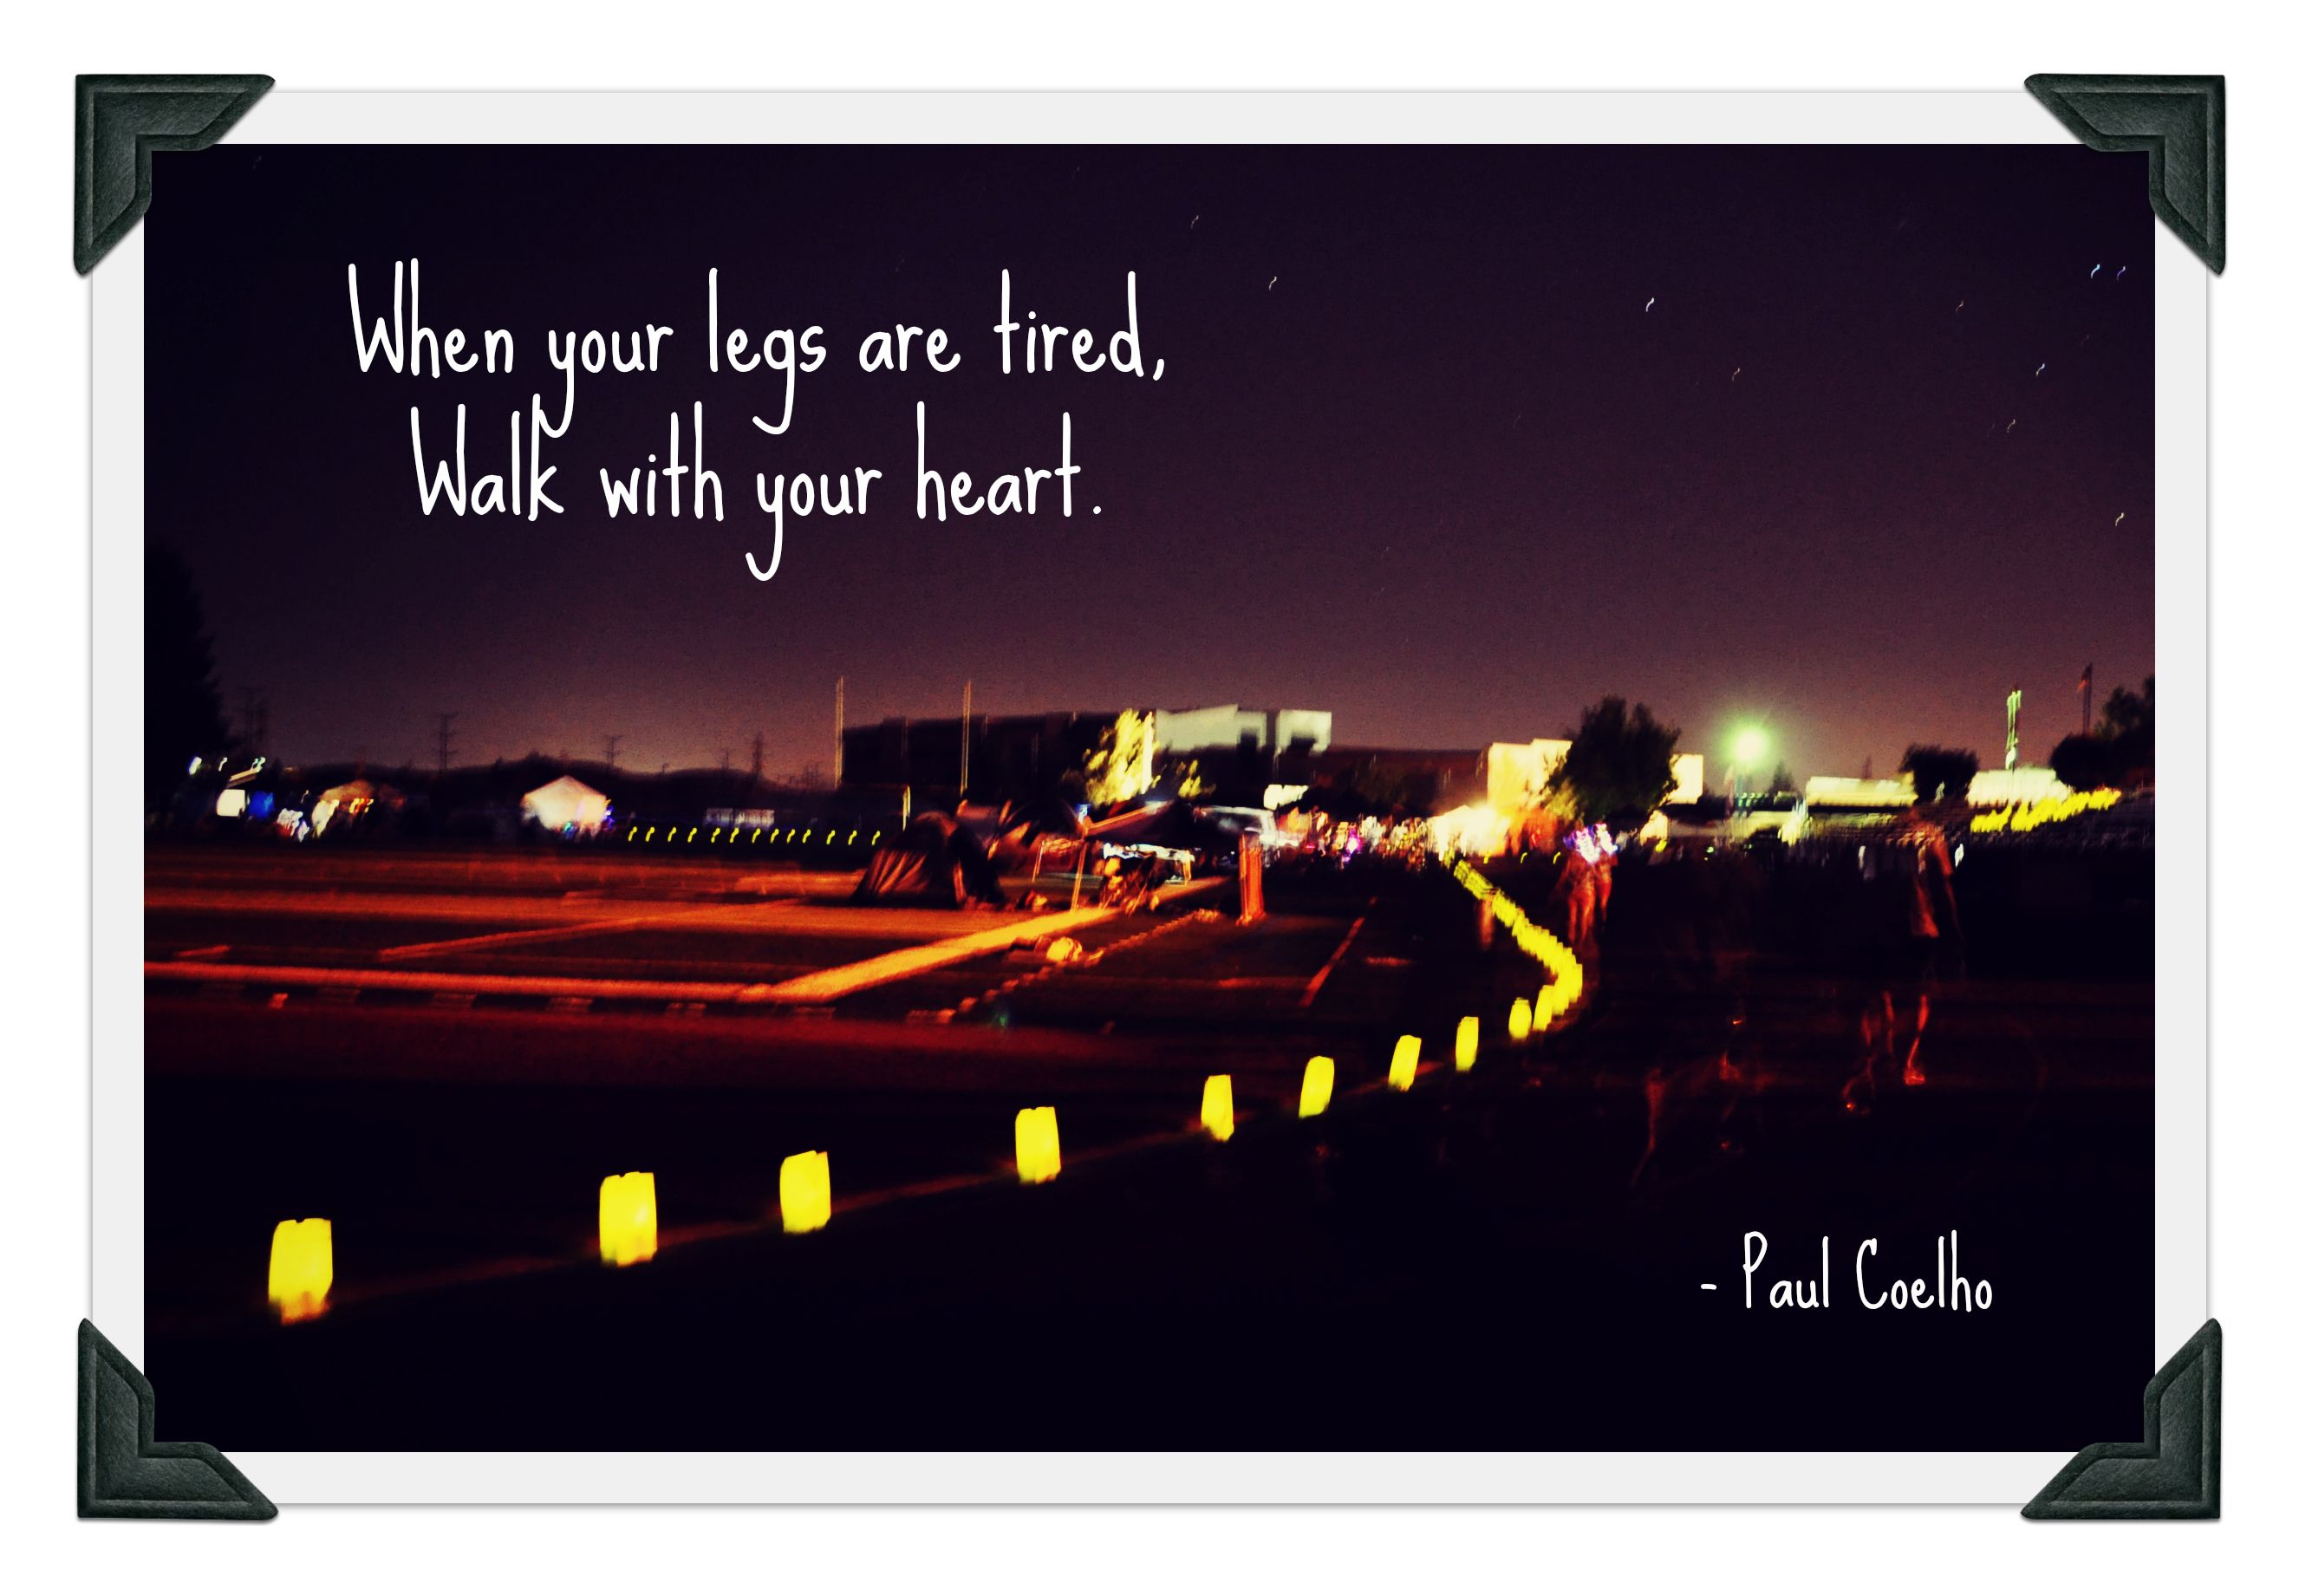 Relay For Life Quotes When Your Legs Are Tired Walk With Your Heart  Paul Coelho